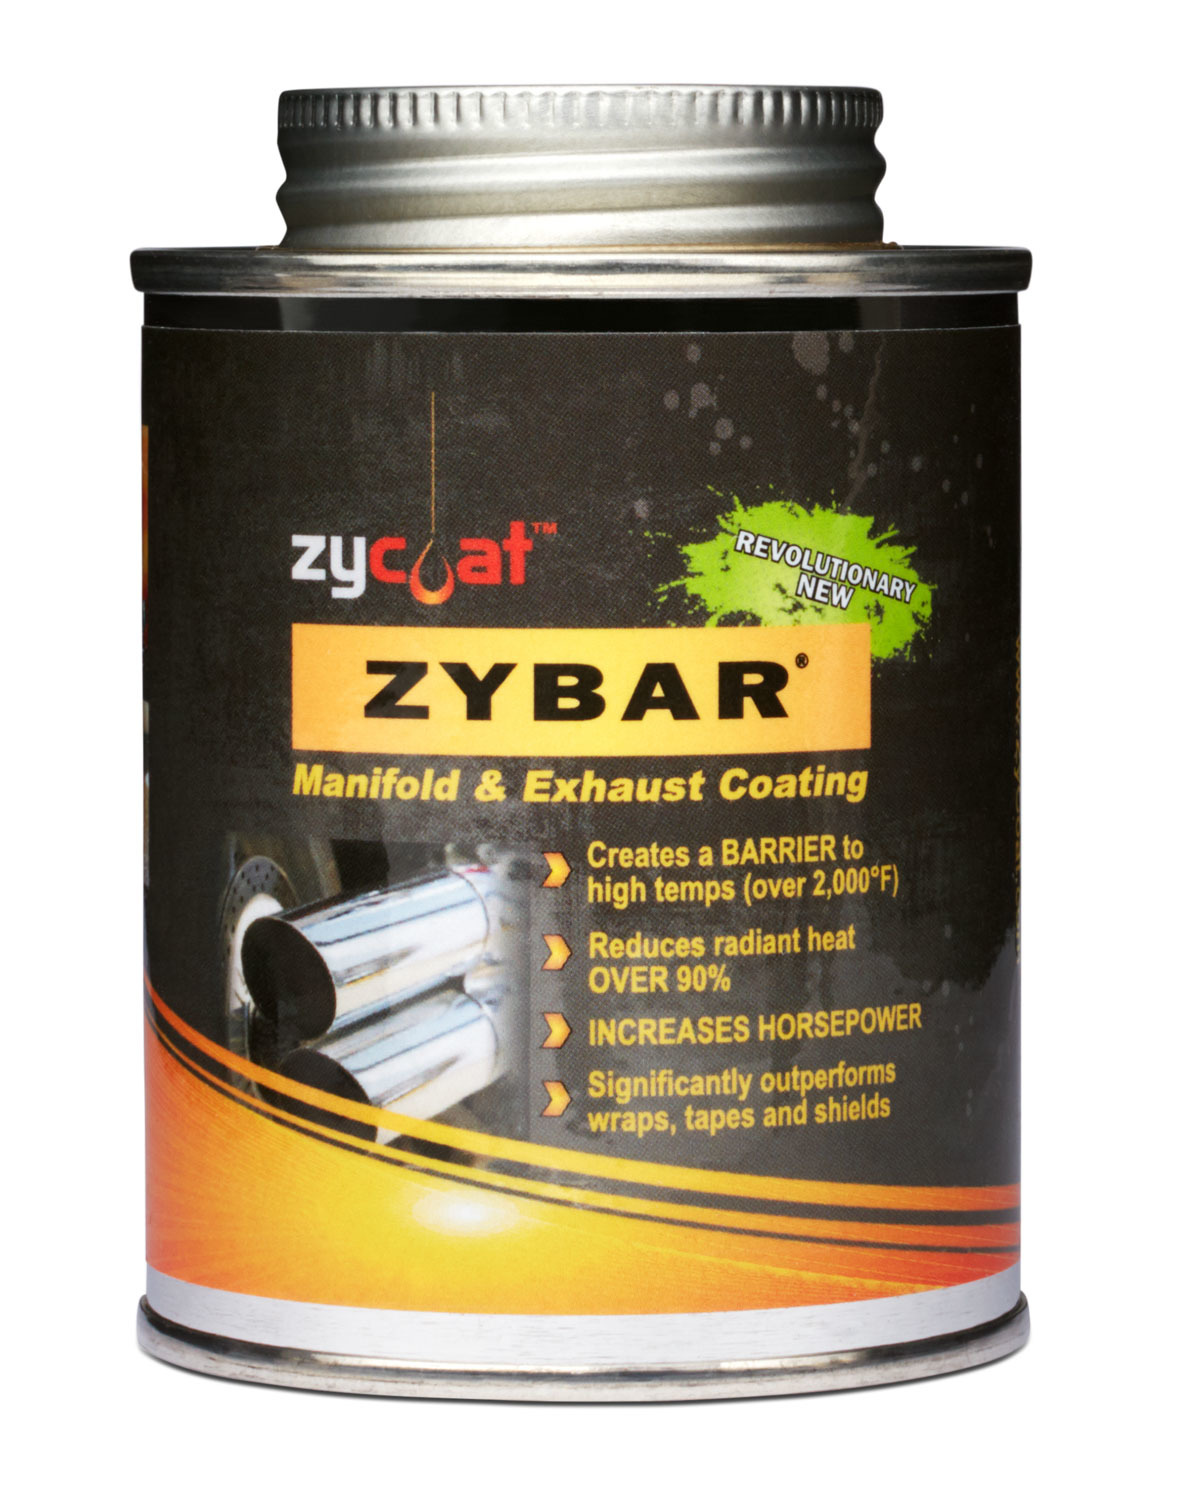 Zycoat 13008 Paint, Exhaust / Header, High Temperature, Ceramic Urethane, Cast Iron Gray, 8 oz Can, Each